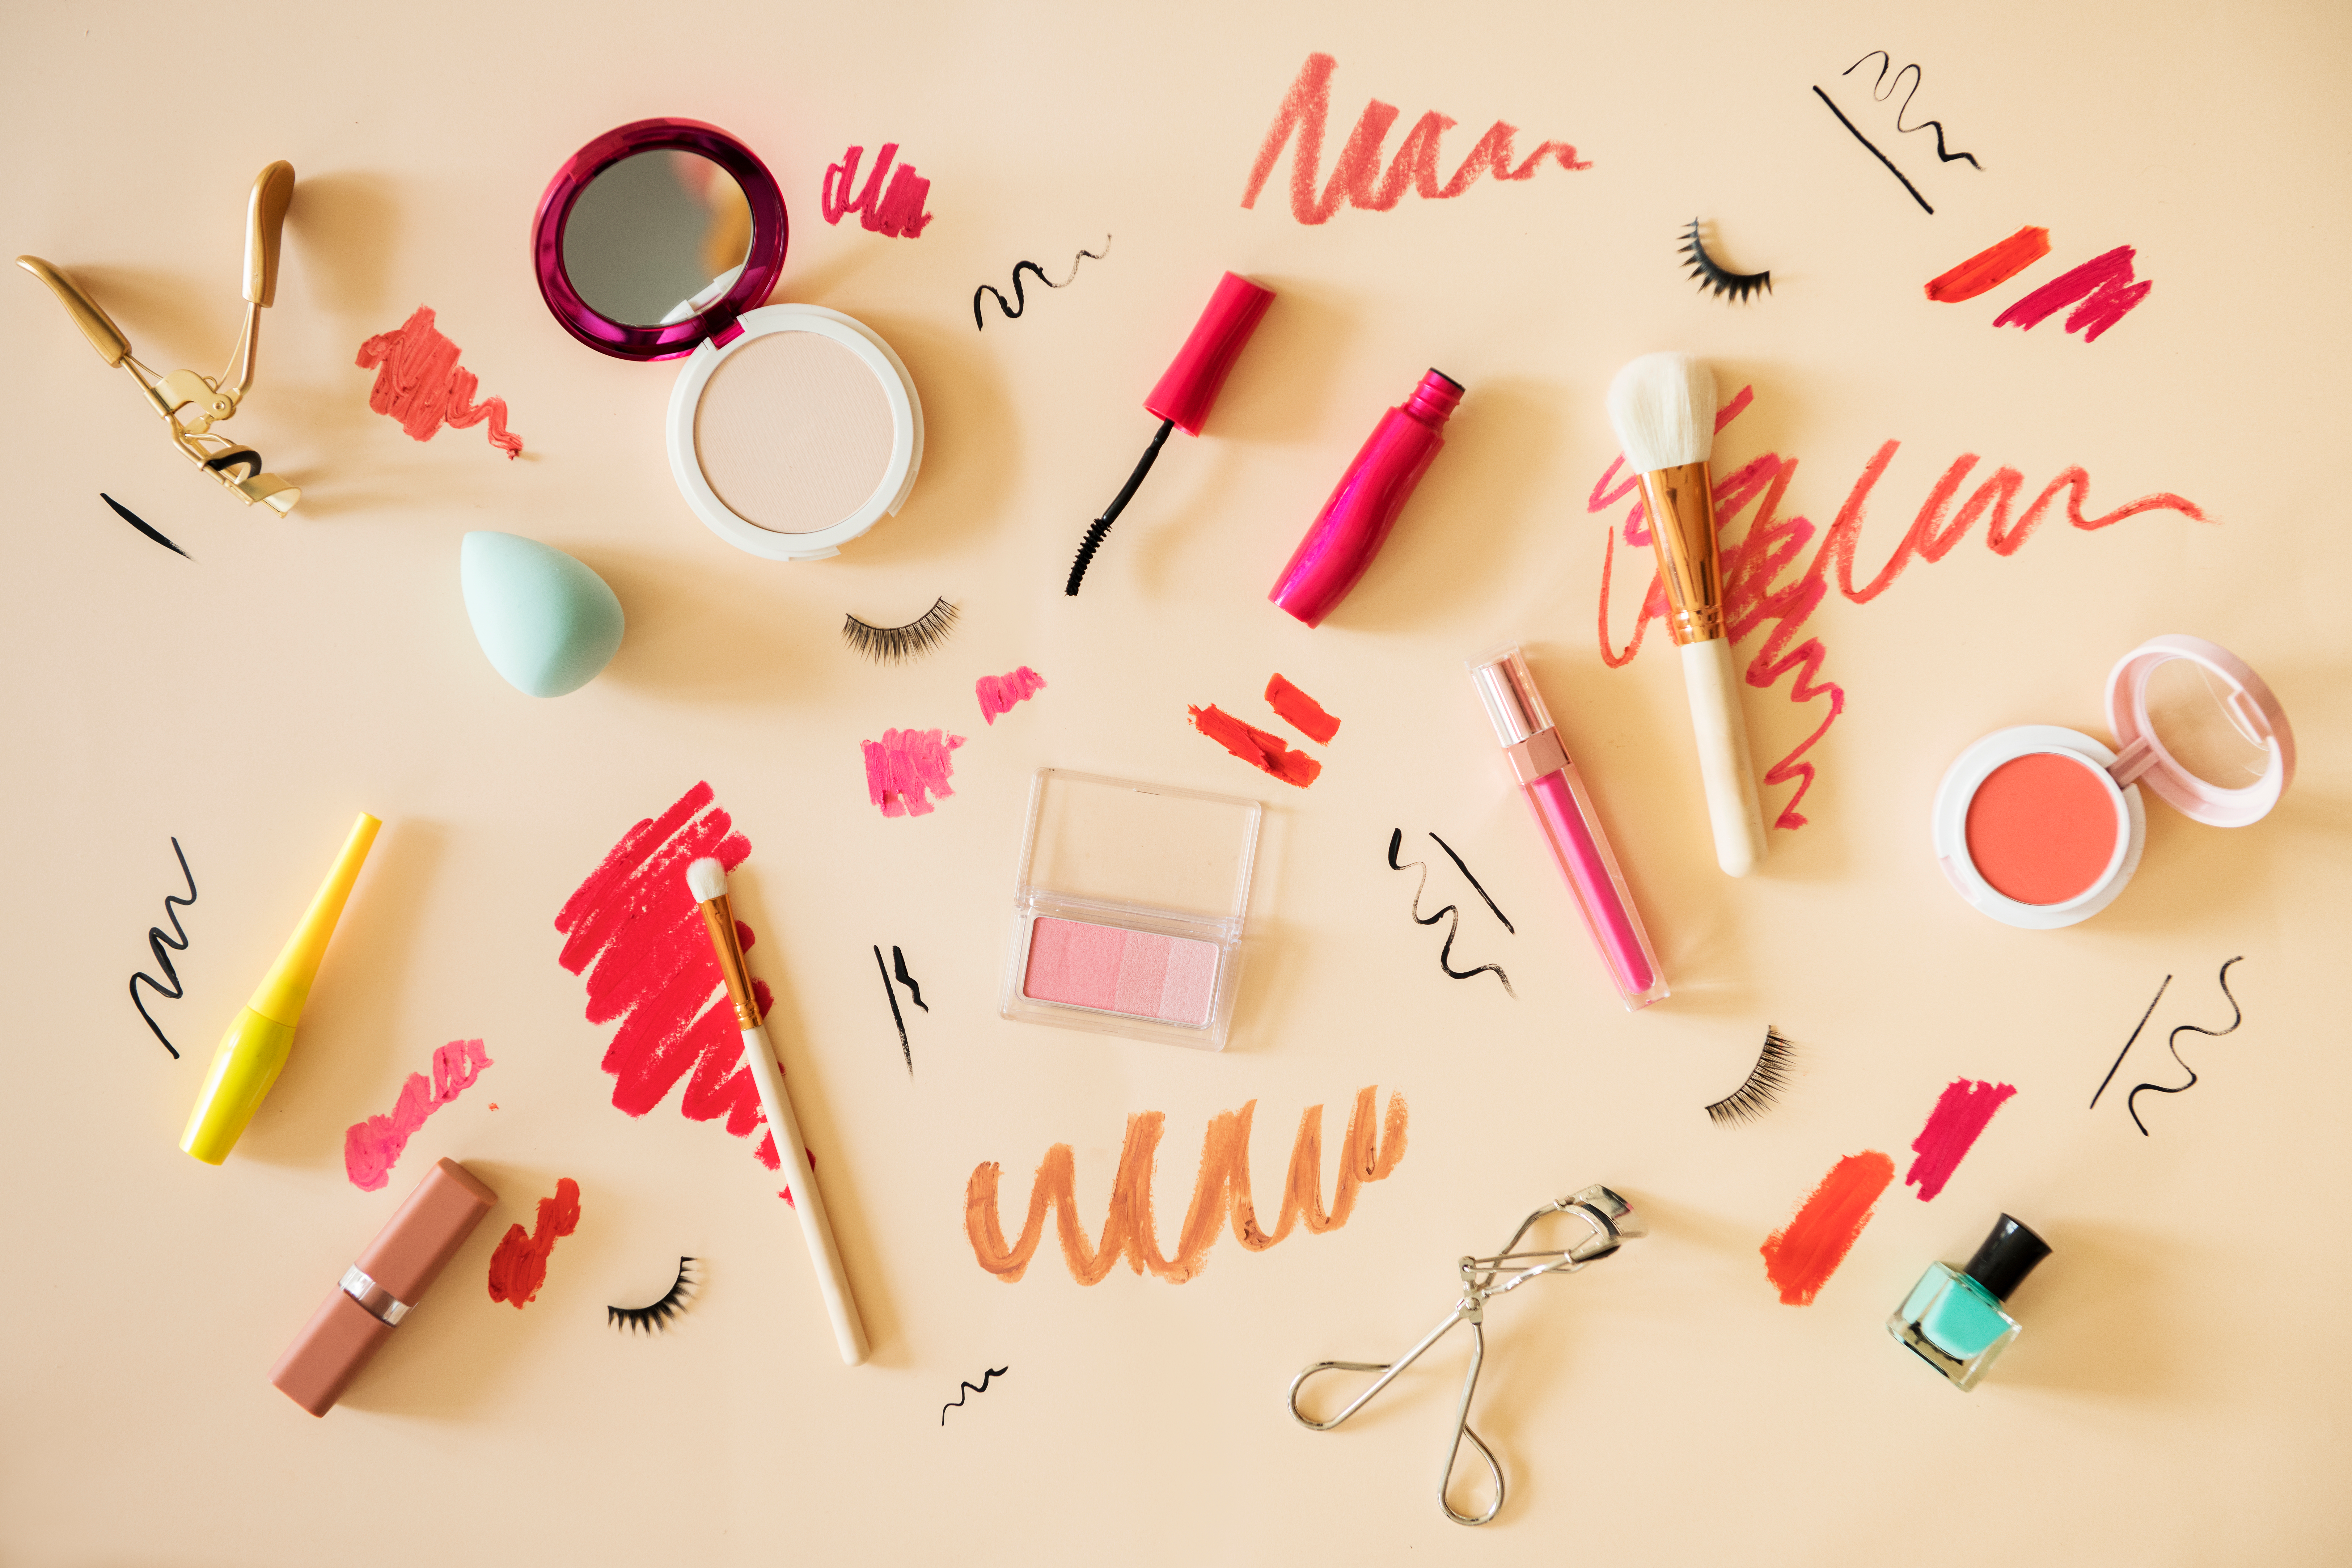 Stylish cosmetics, some of which may contain harmful ingredients